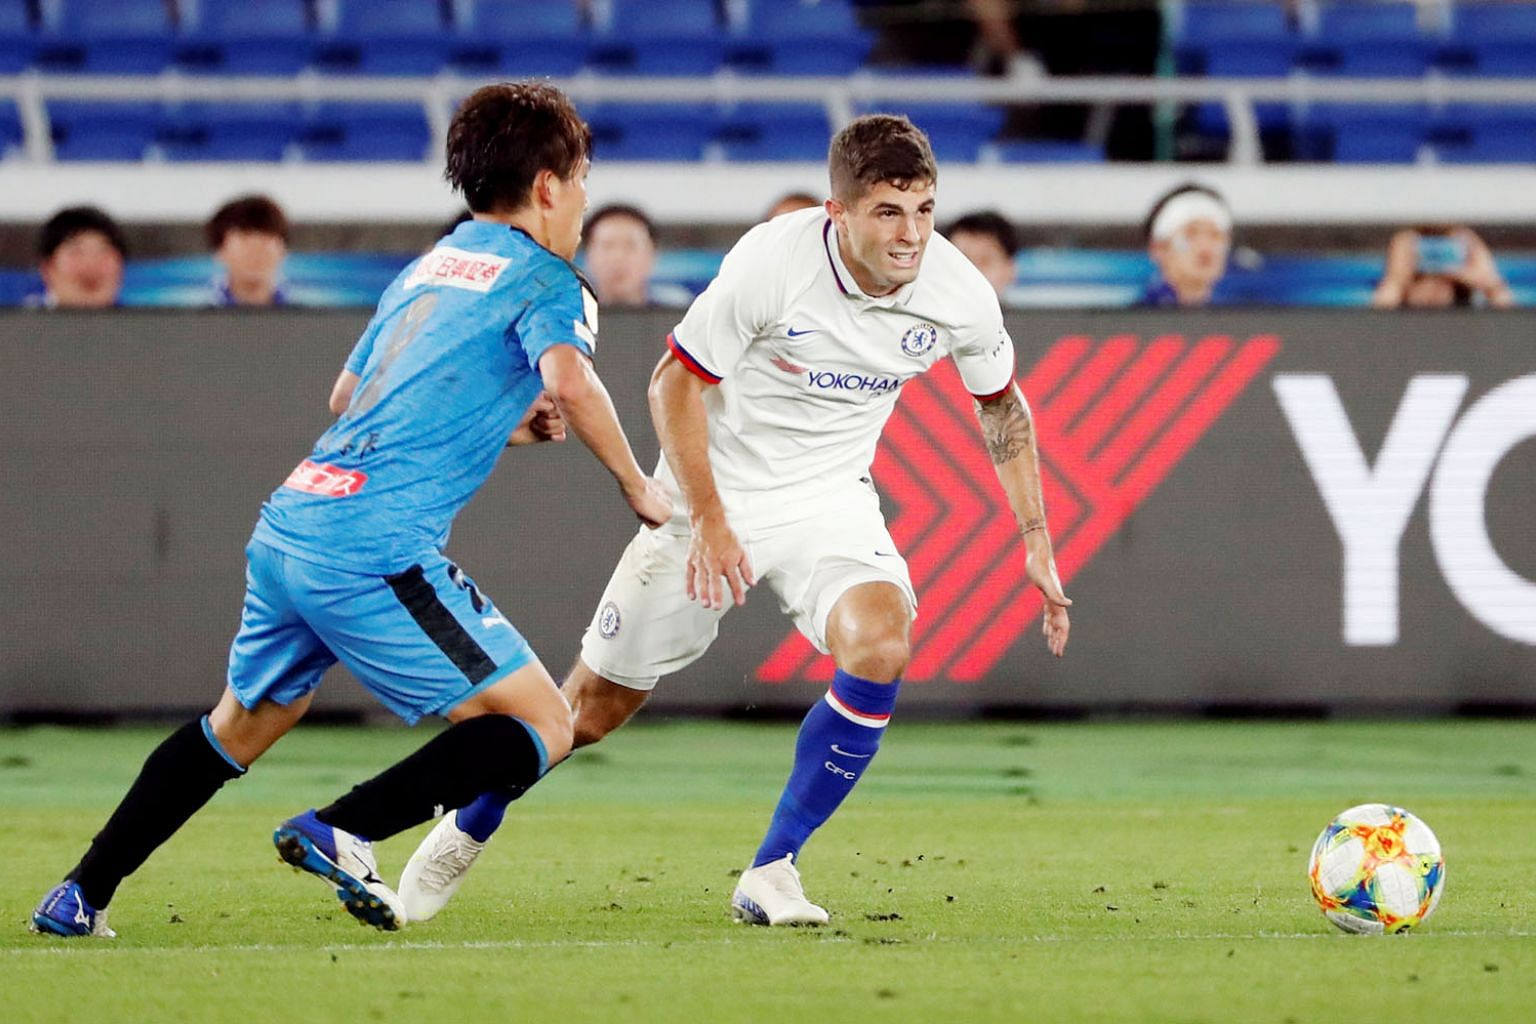 United States midfielder Christian Pulisic is expected to take up the attacking mantle of the departed Eden Hazard.